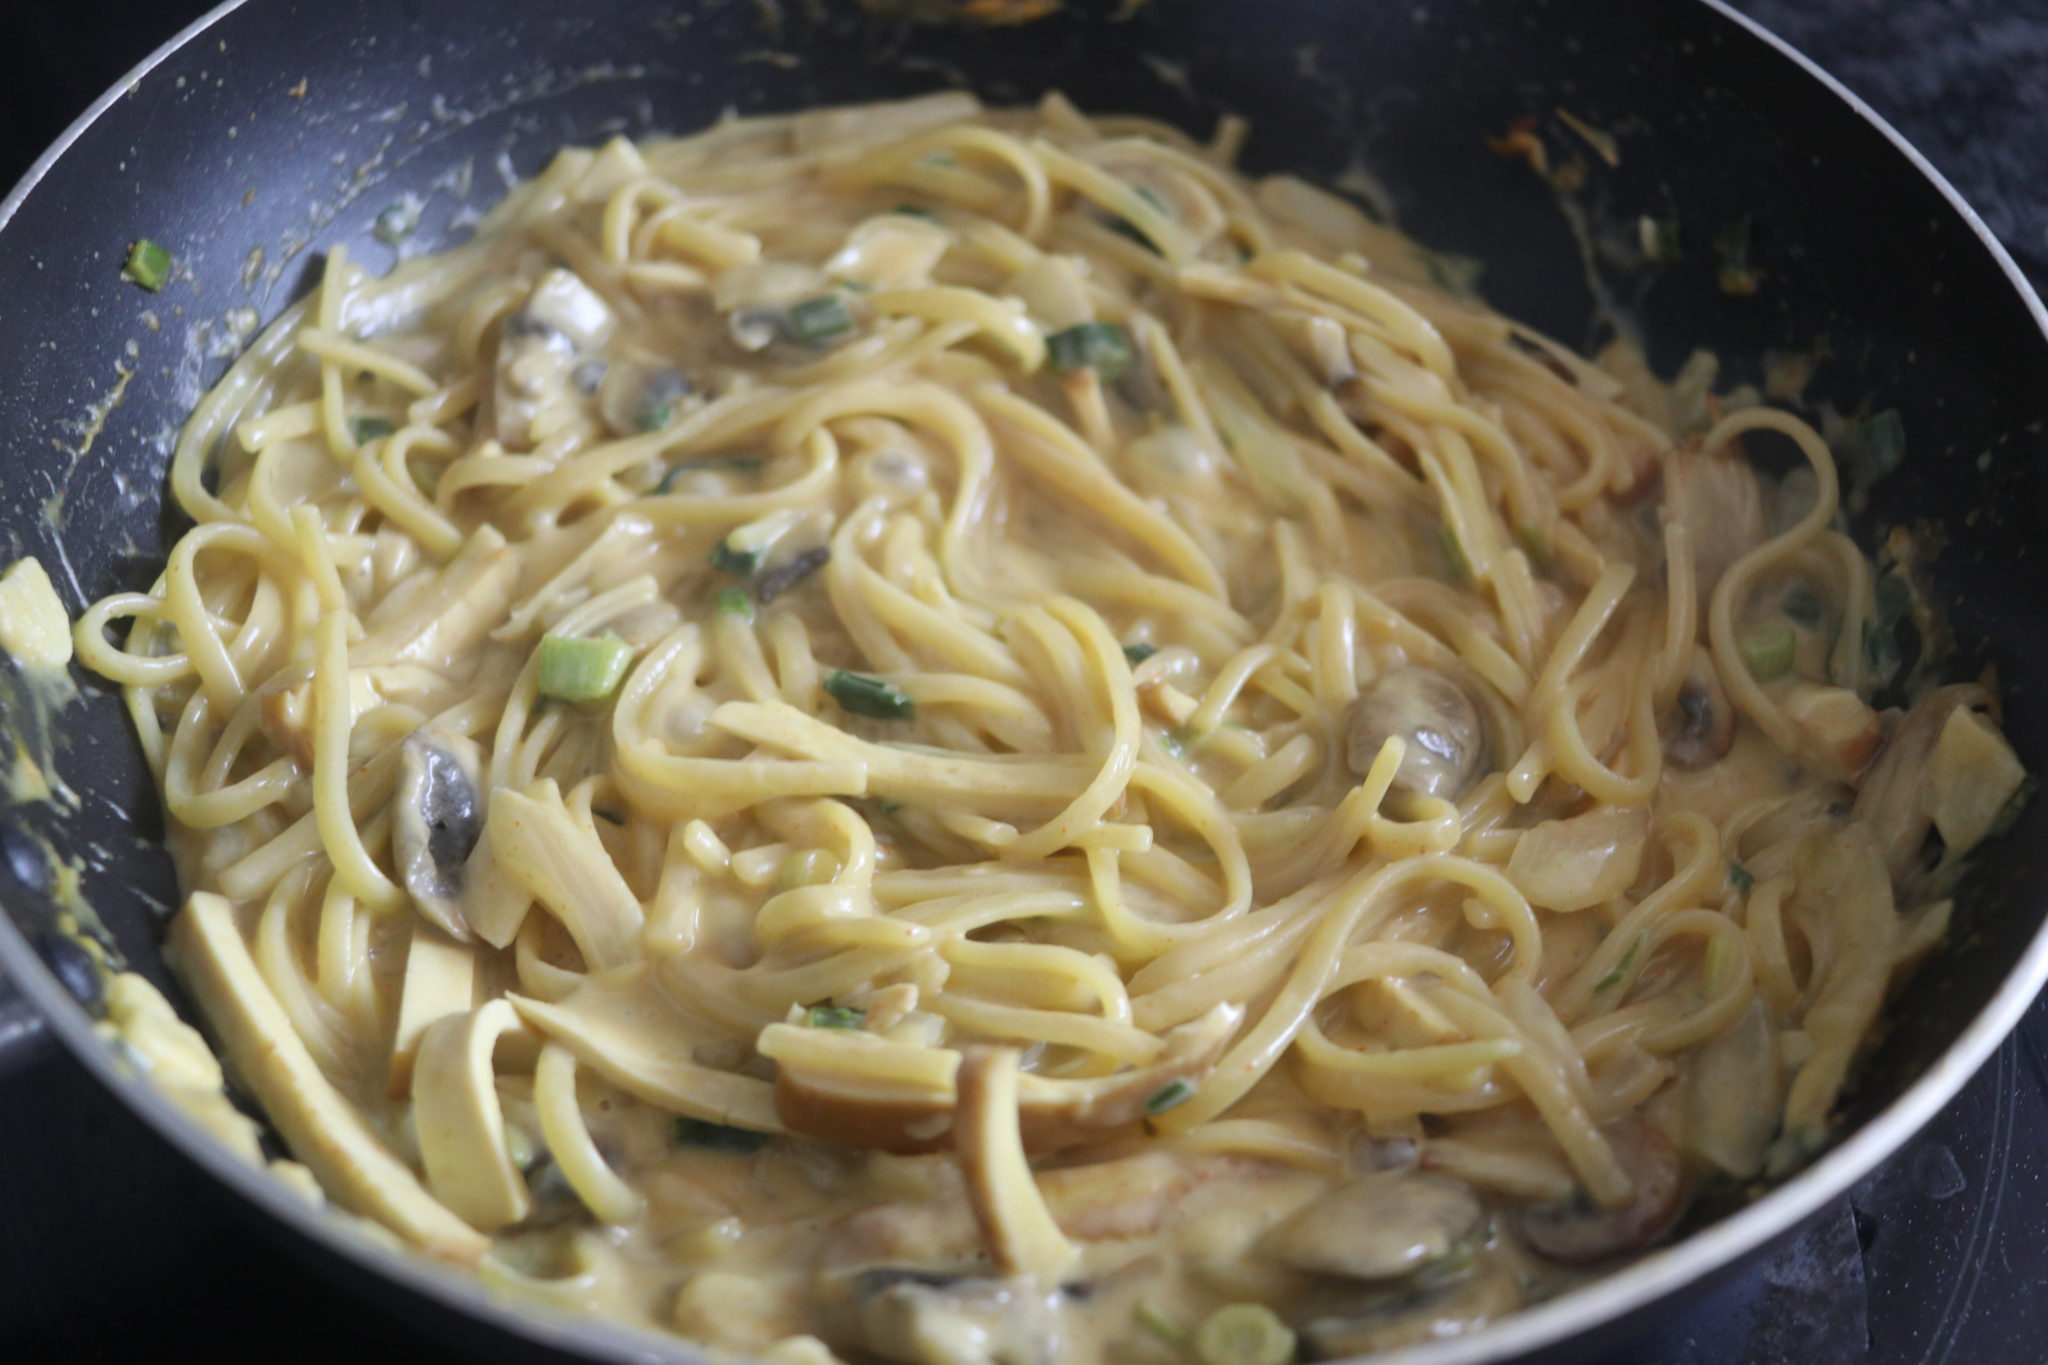 Vegan Take On Toowoomba Pasta From Outback Steakhouse Creamy Spicy Pasta Recipe Cheap Lazy Vegan